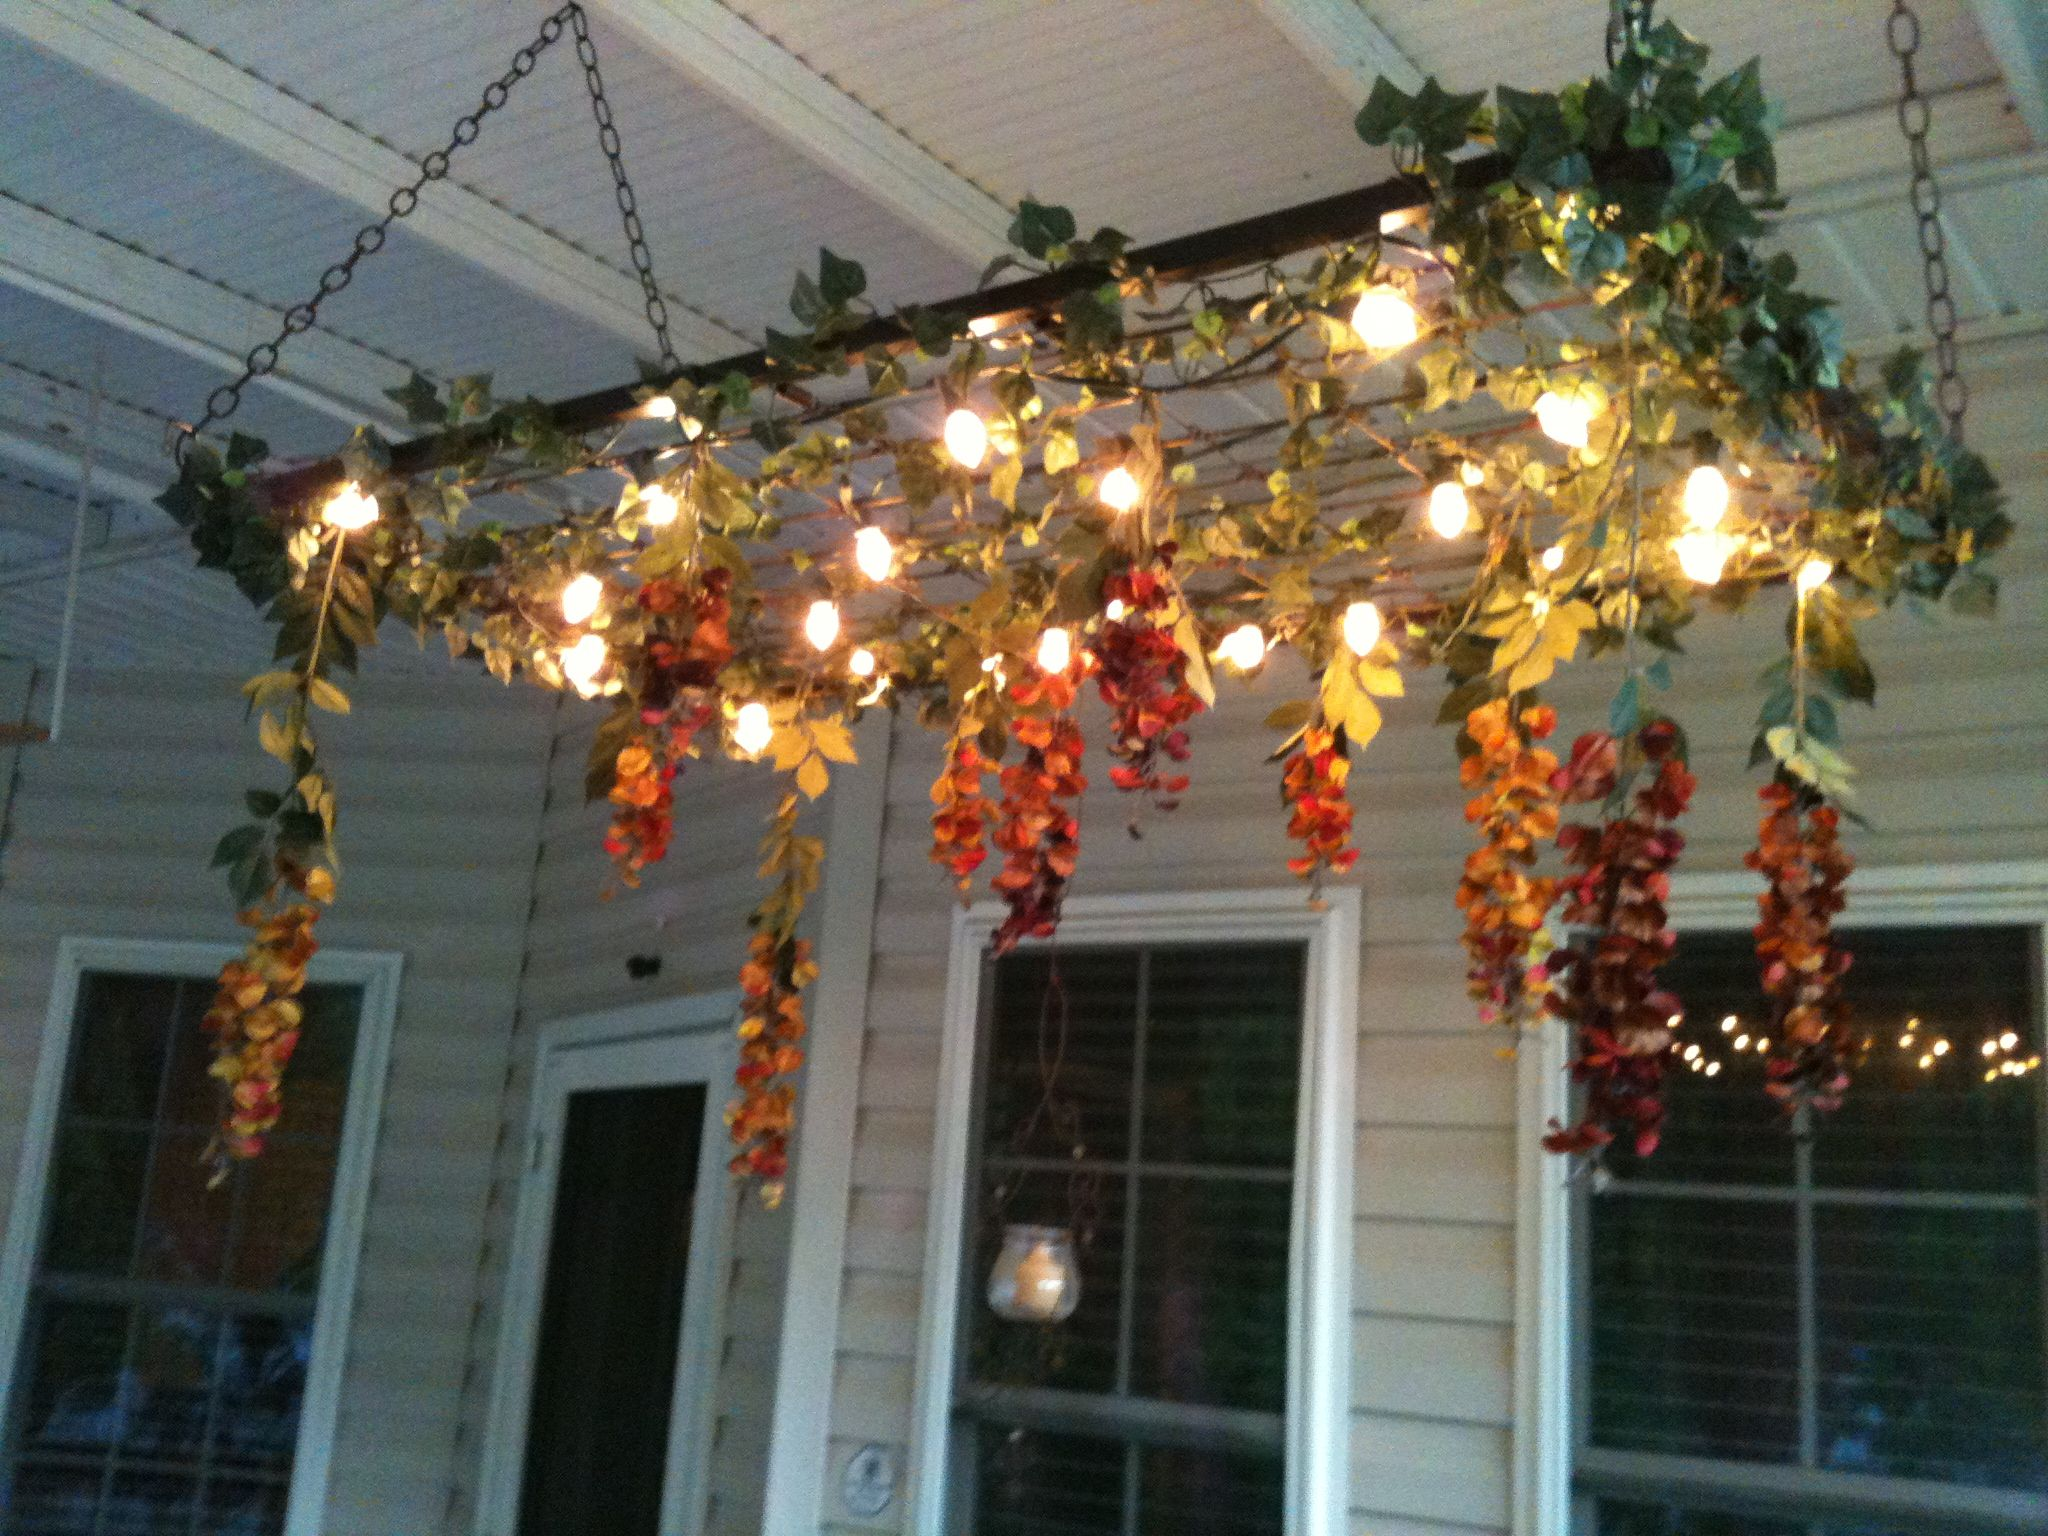 The Porch Chandelier I Made For Our Deck Out Of A Crib Box Spring Bed Spring Crafts Cribs Repurpose Bed Springs